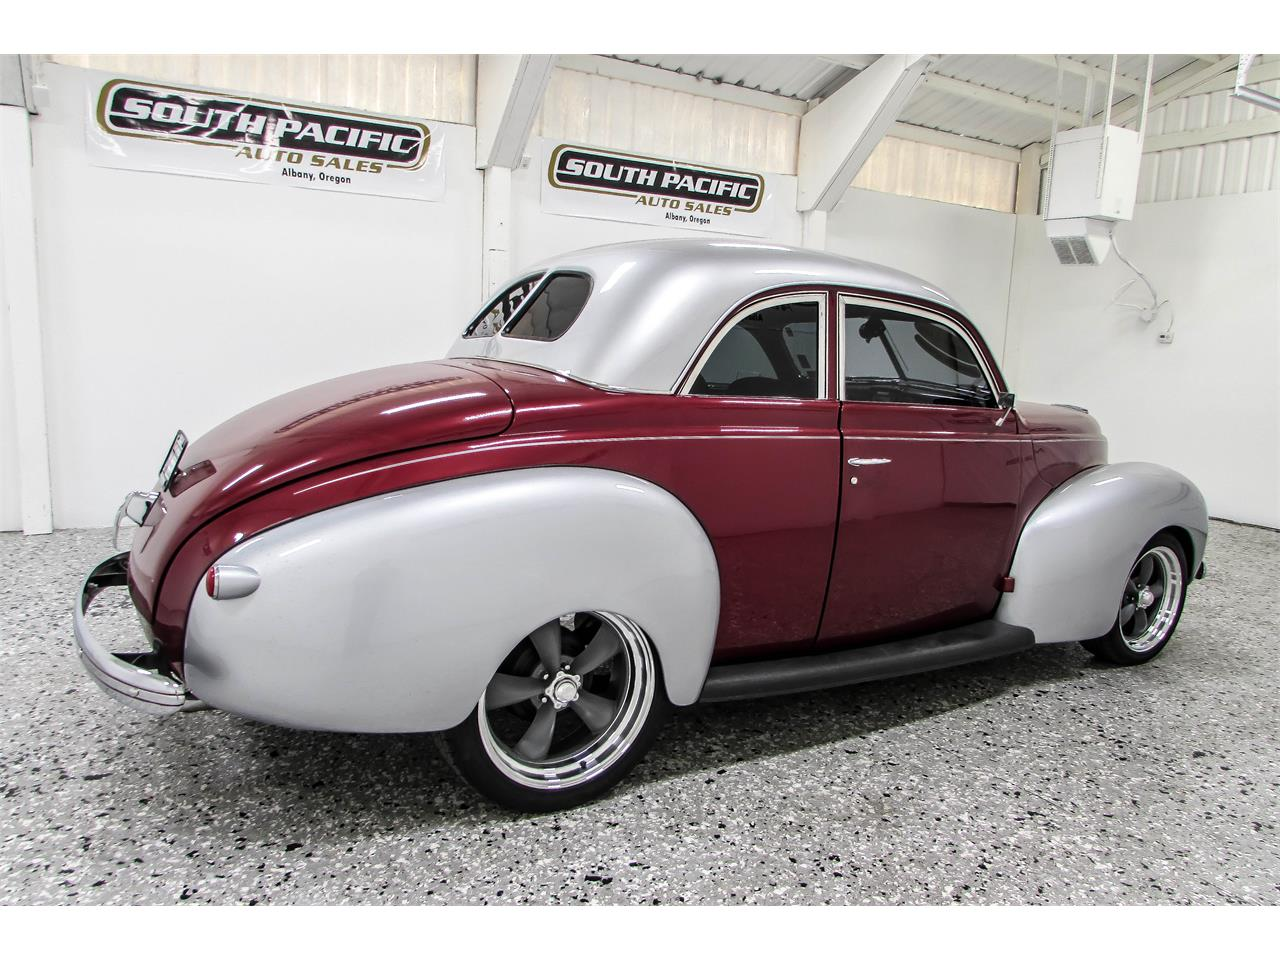 Large Picture of 1939 Mercury Coupe located in Oregon - $27,995.00 Offered by a Private Seller - N6LJ